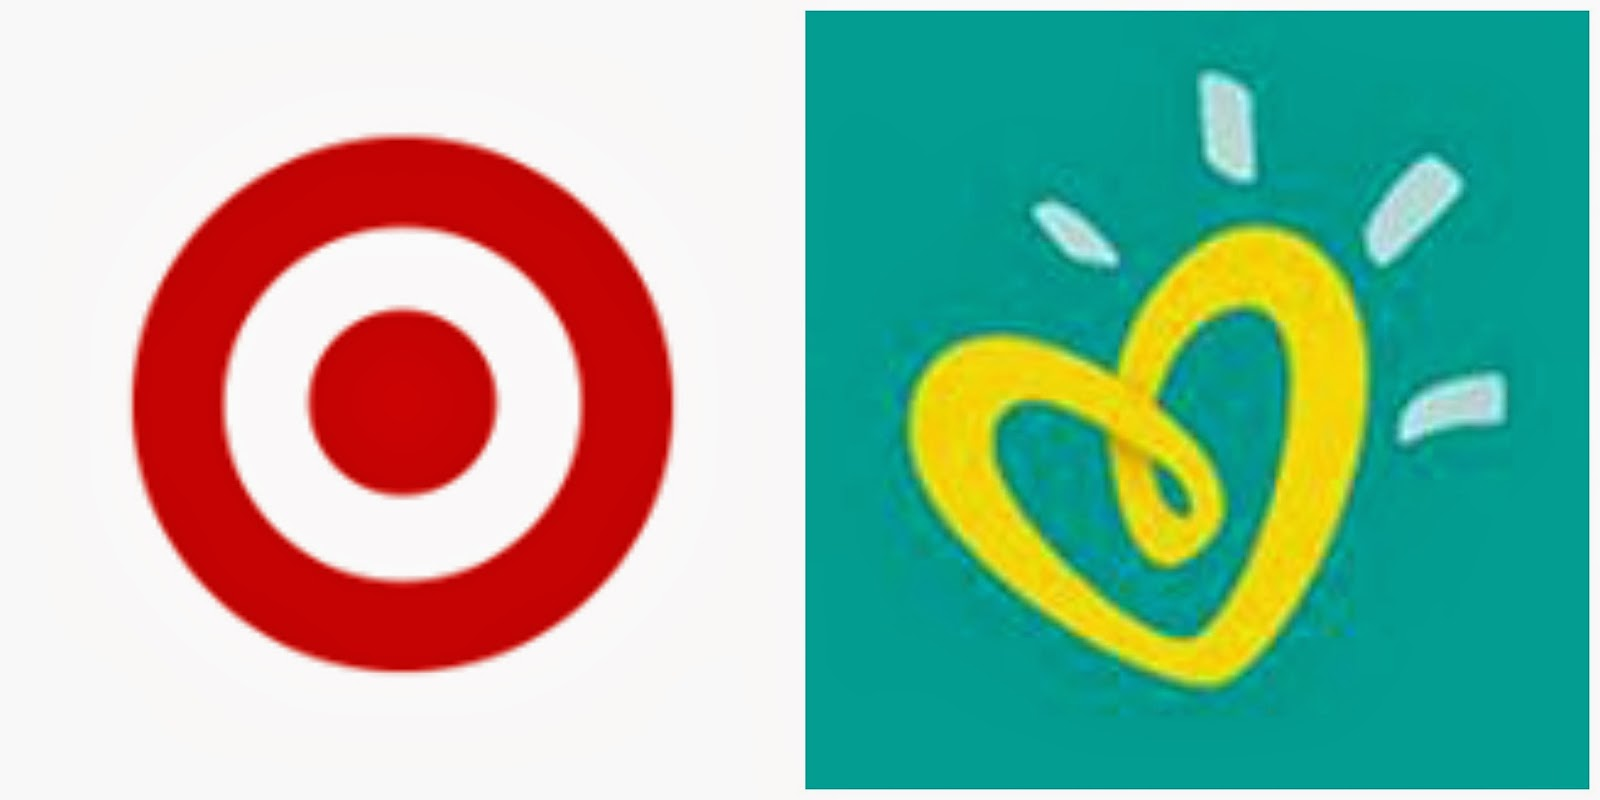 Pampers Logo Heart Pictures to Pin on Pinterest - ThePinsta | 1600 x 800 jpeg 64kB